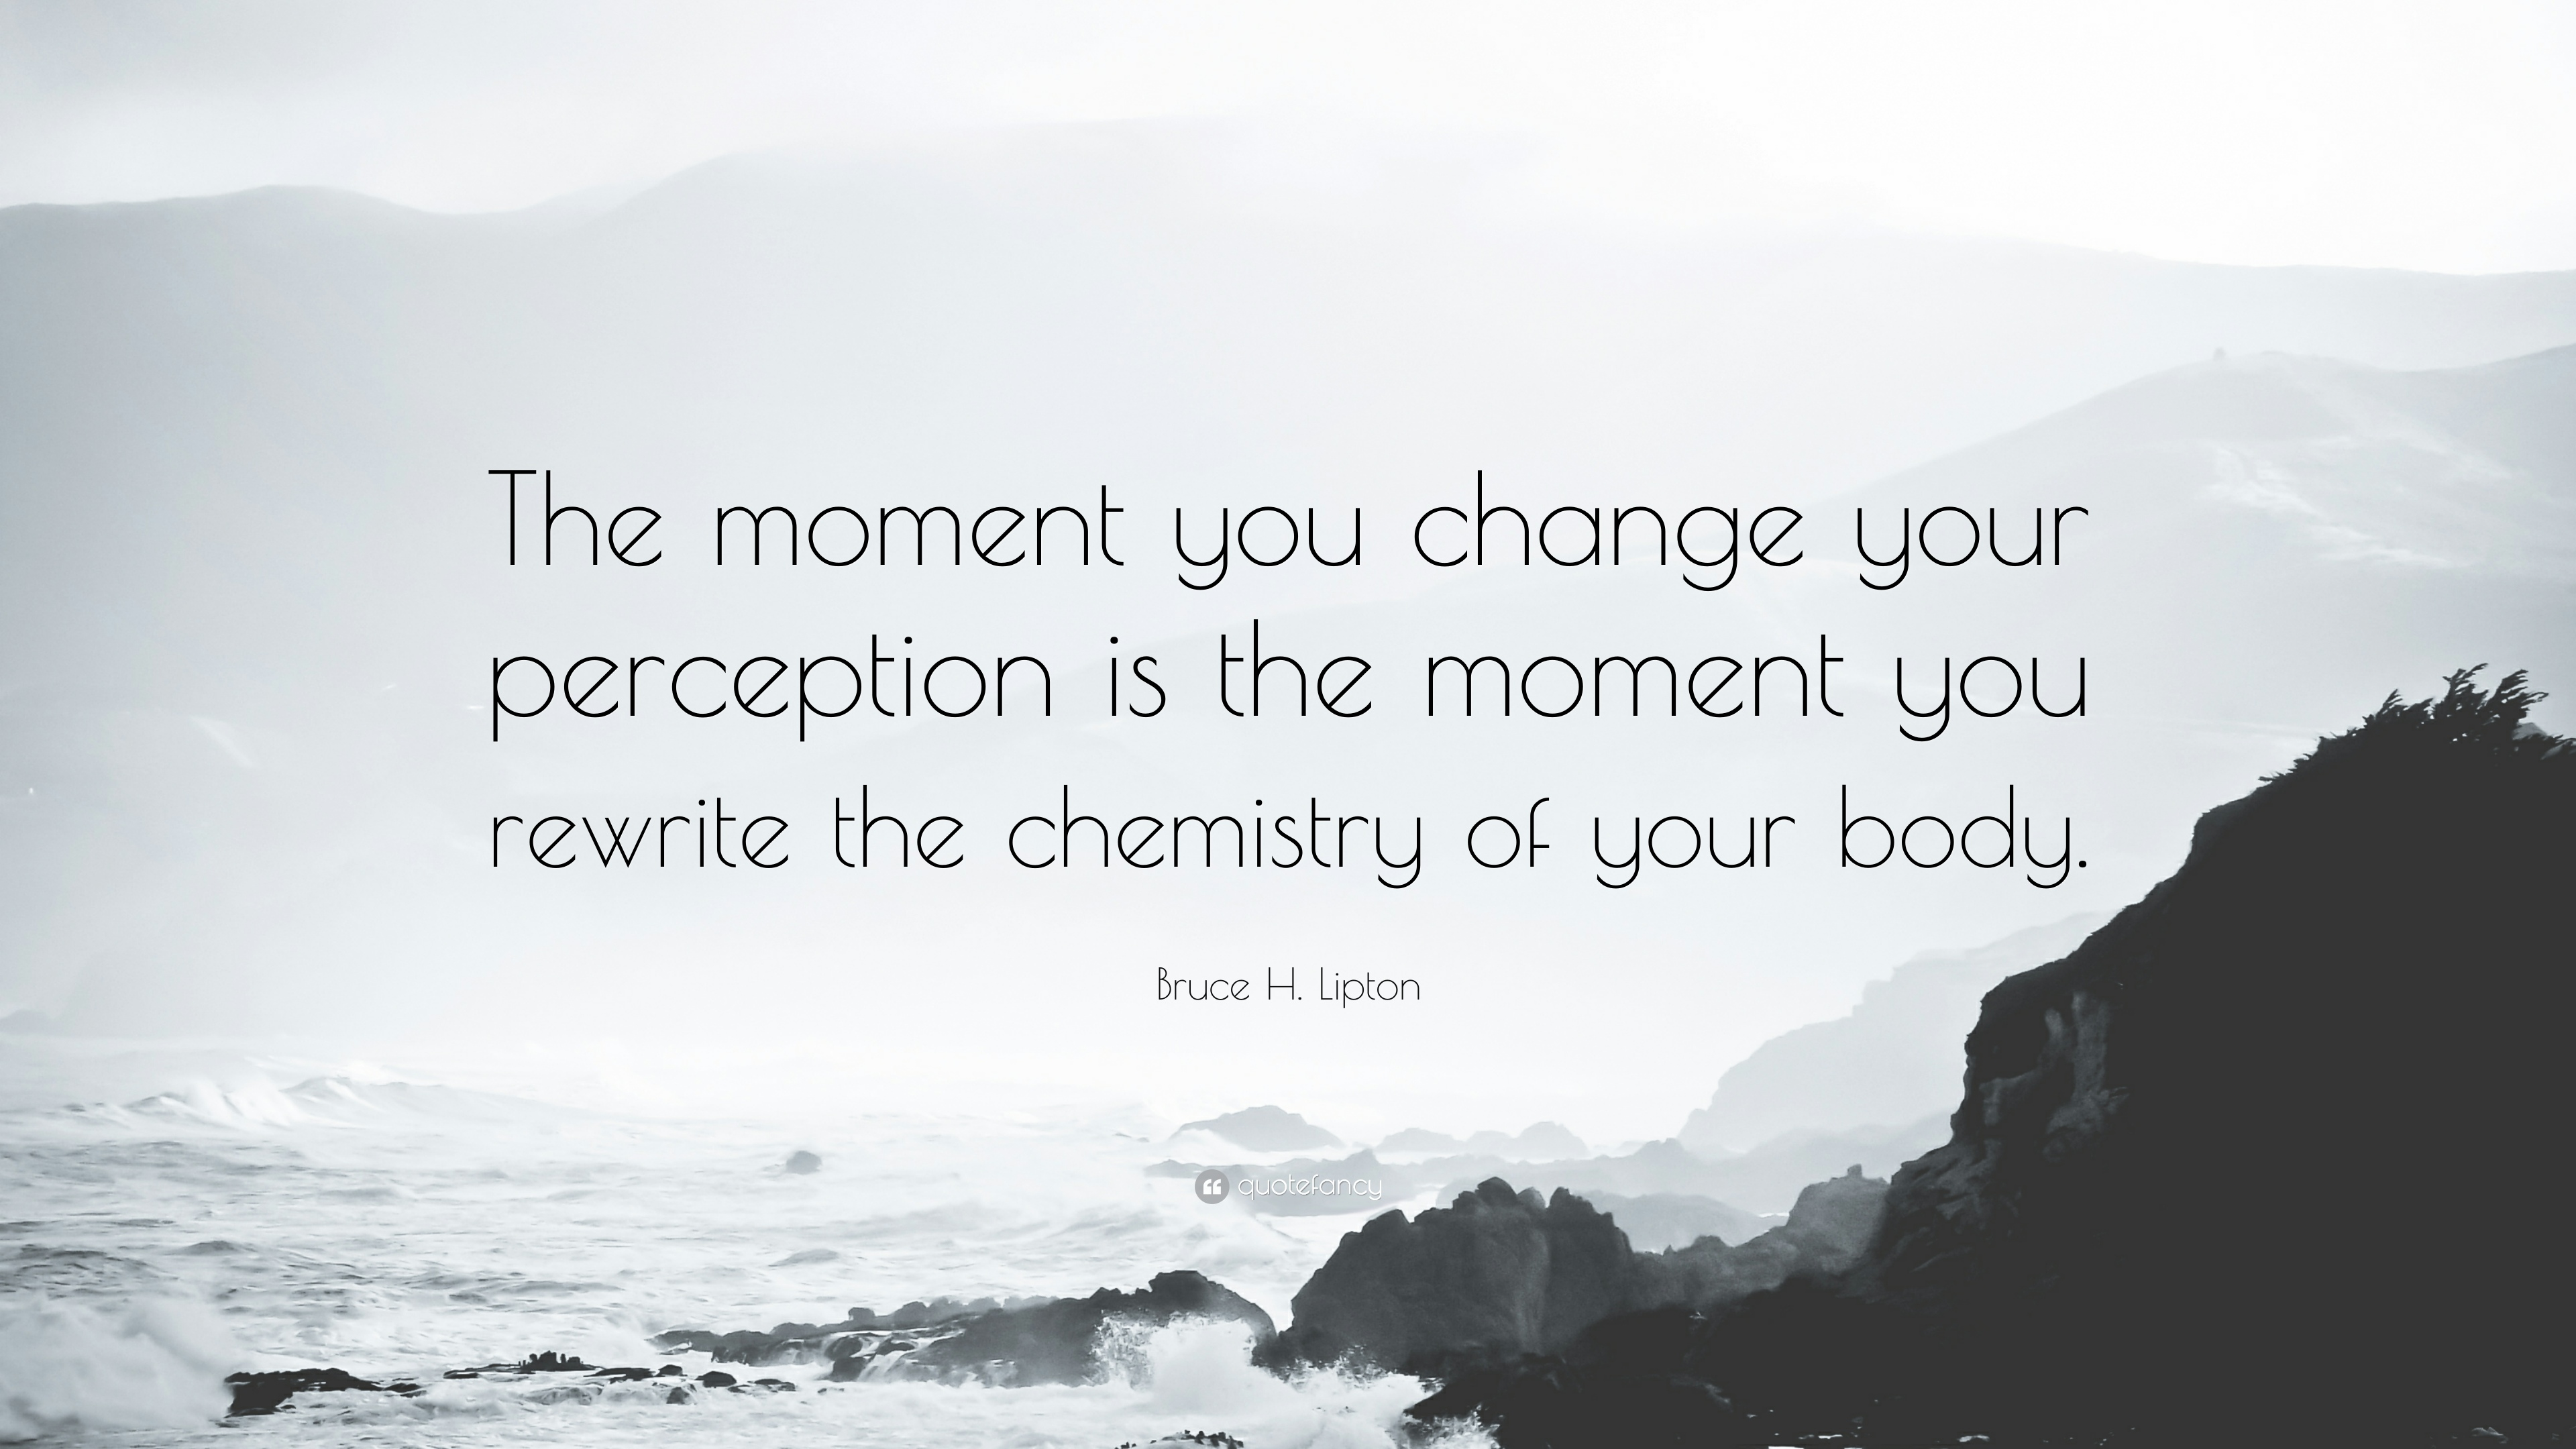 Image result for bruce lipton the moment you change your perception